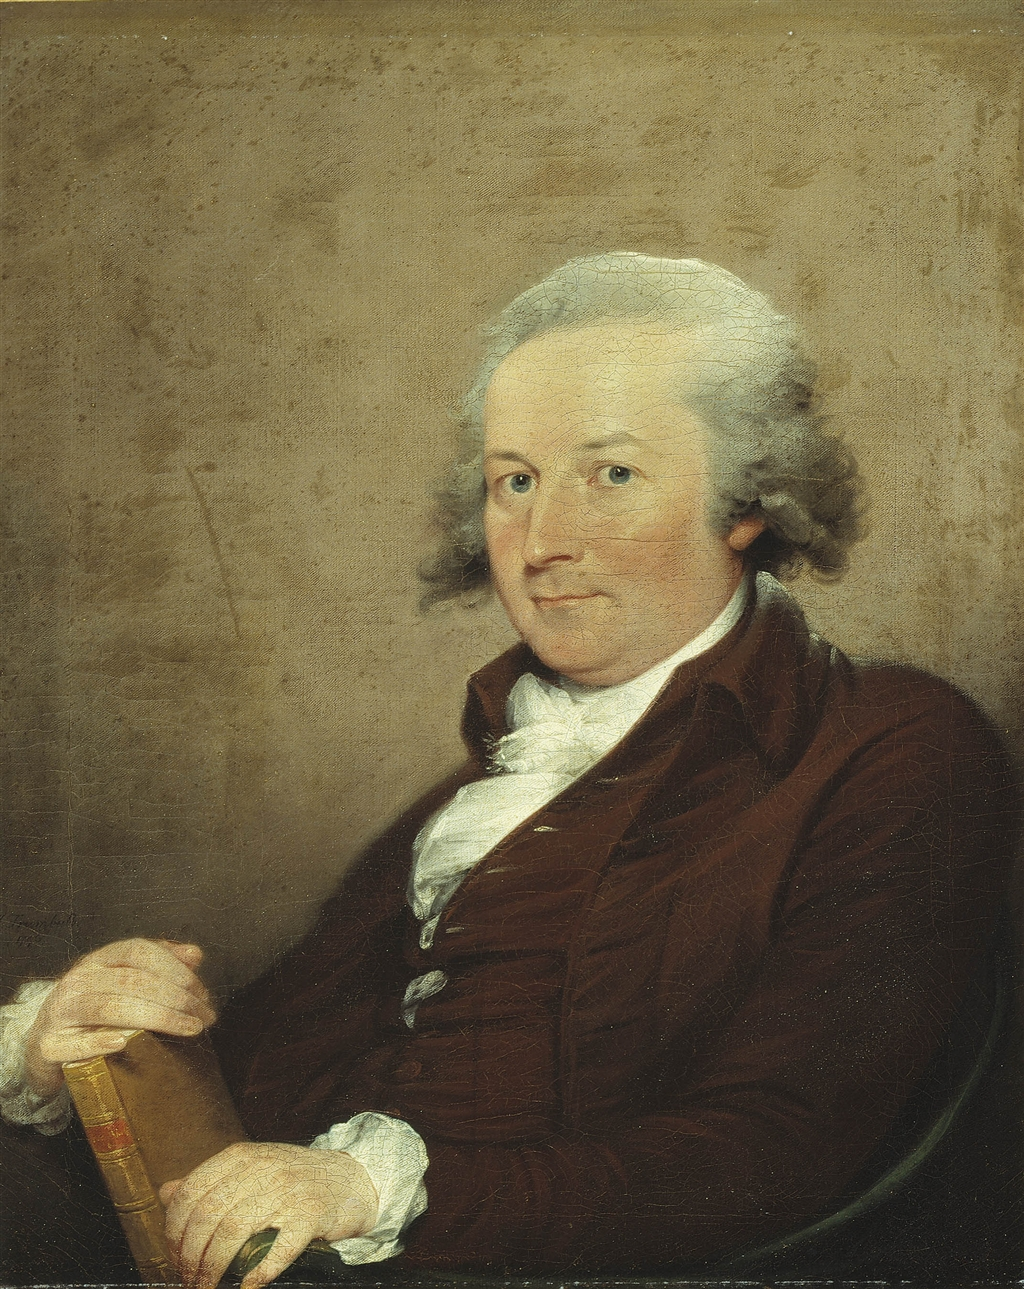 Poet John Trumbull by his cousin, painter John Trumbull. Confused? Only because you haven't been properly taught American literature (or American art for that matter).